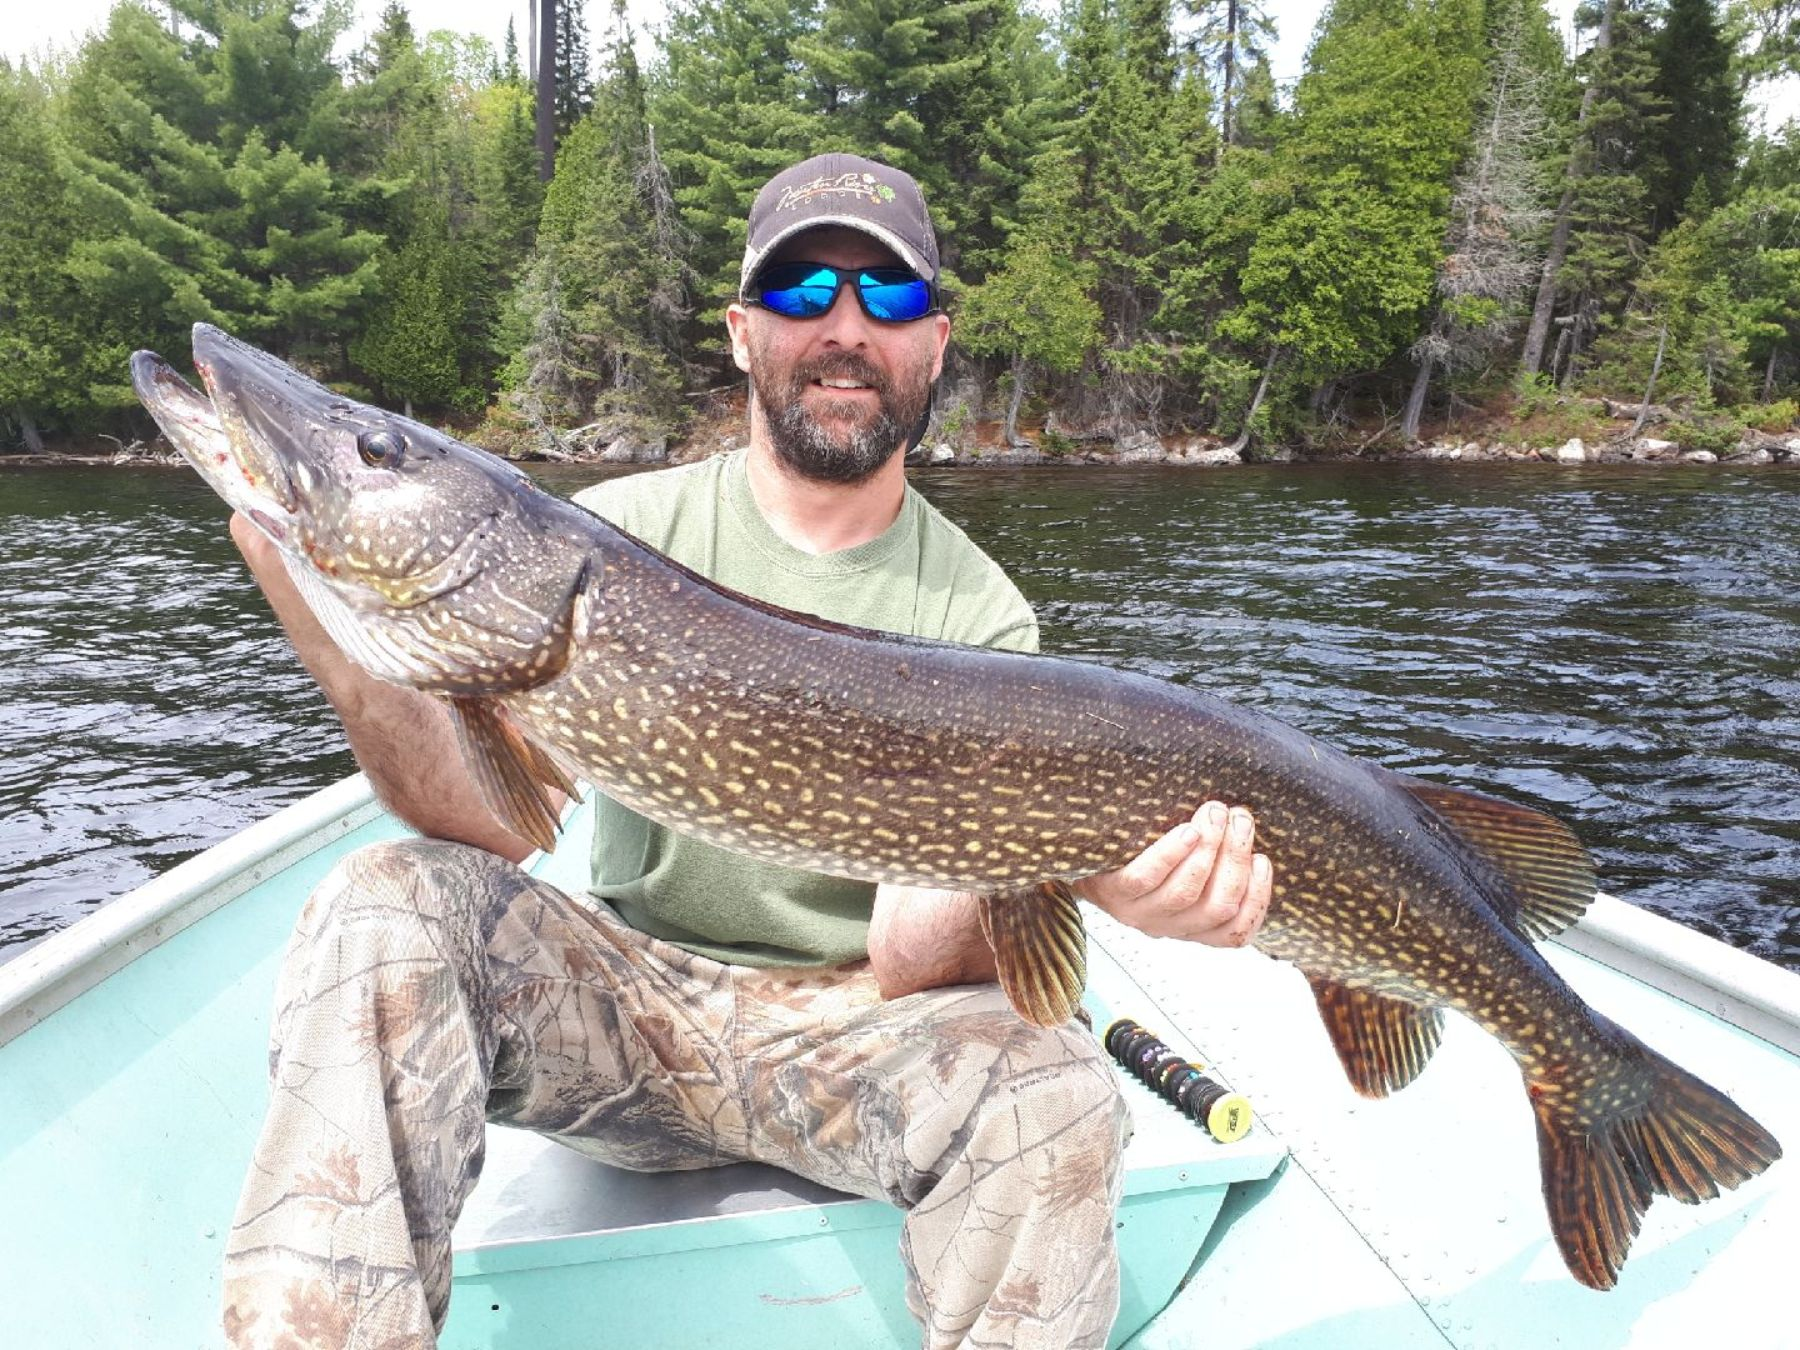 North River Outfitters